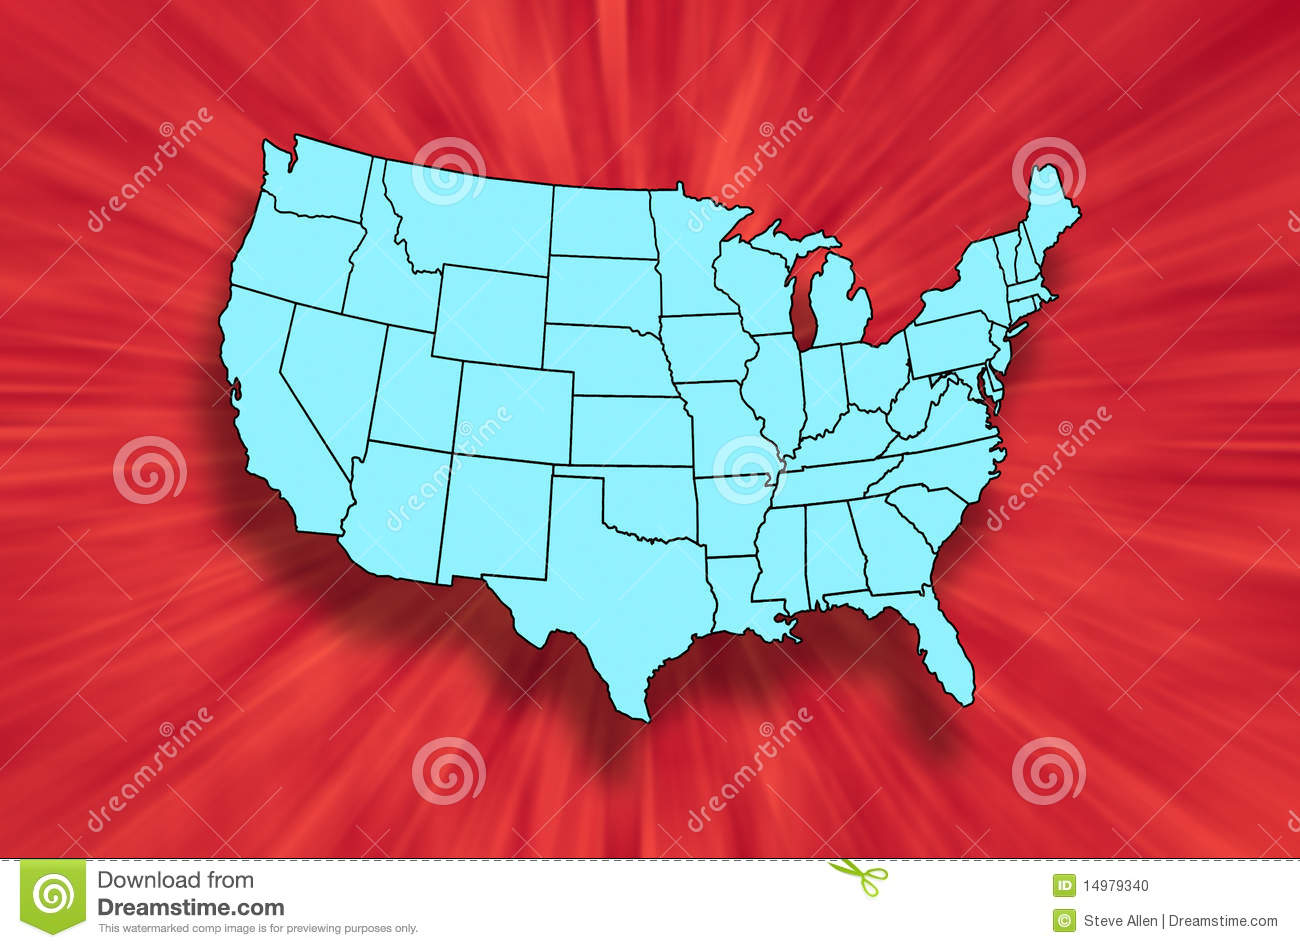 Map of US Mainland States stock illustration  Illustration of maps     A map of the States of the mainland United States of America